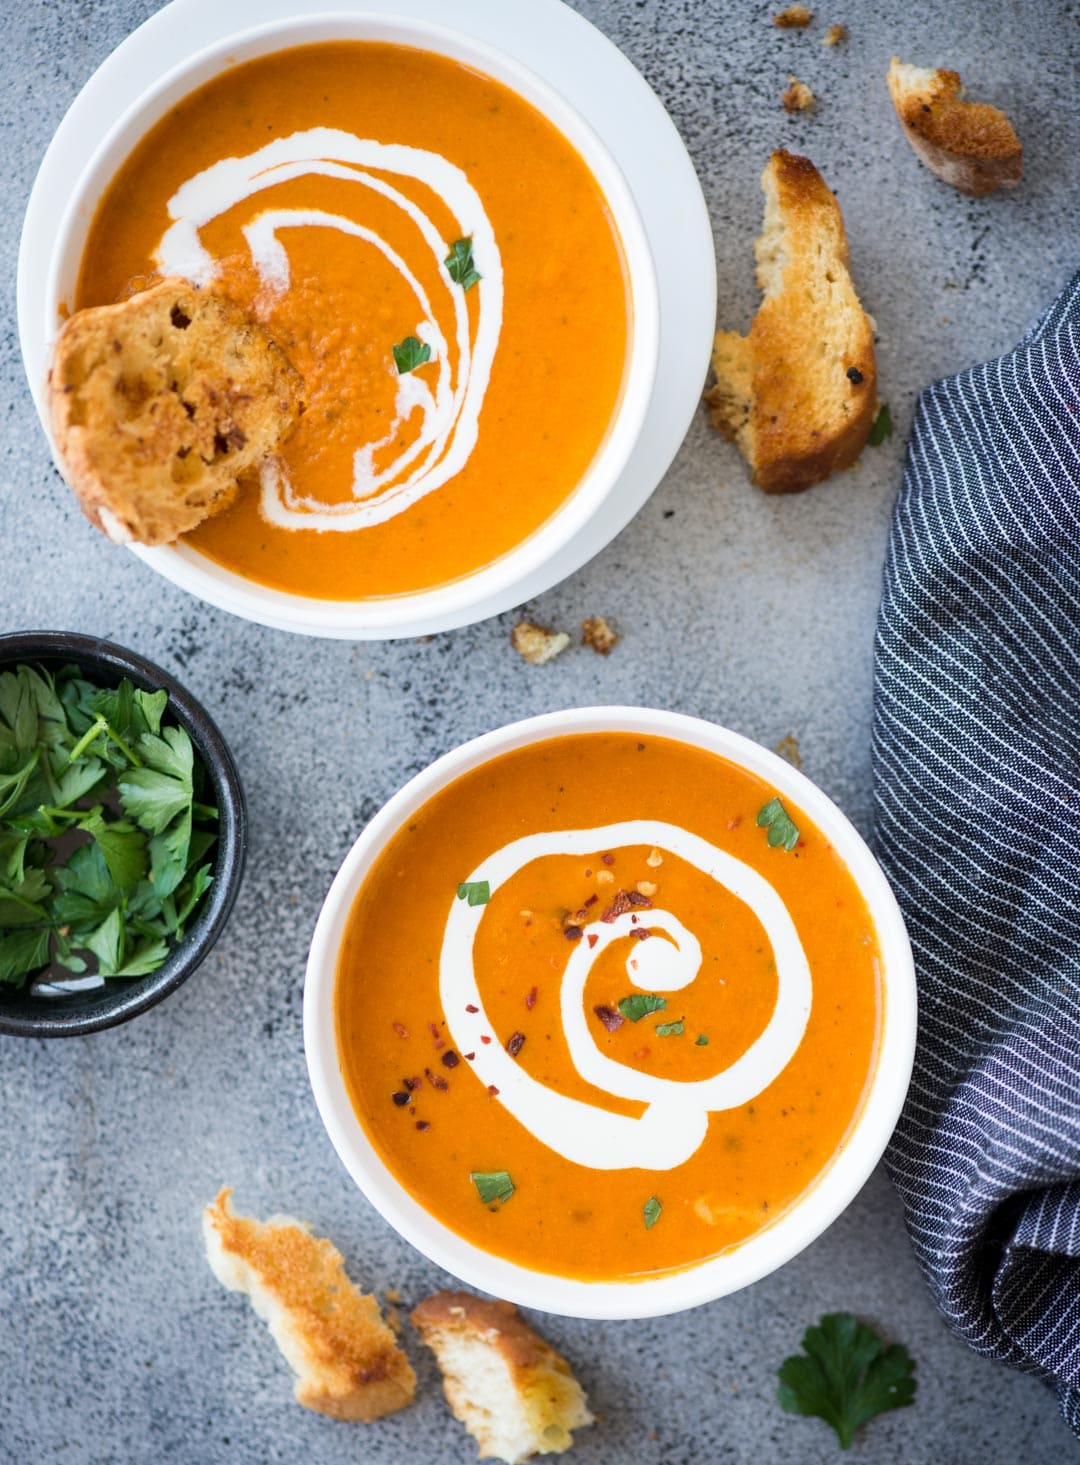 Thick and Creamy Tomato Bisque with a hint of tartness from the tomatoes, is the perfect soup for cold winter days. It is healthy, gluten-free and easy to make. Serve this with a big slice of crusty garlic cheese toast or grilled cheese.